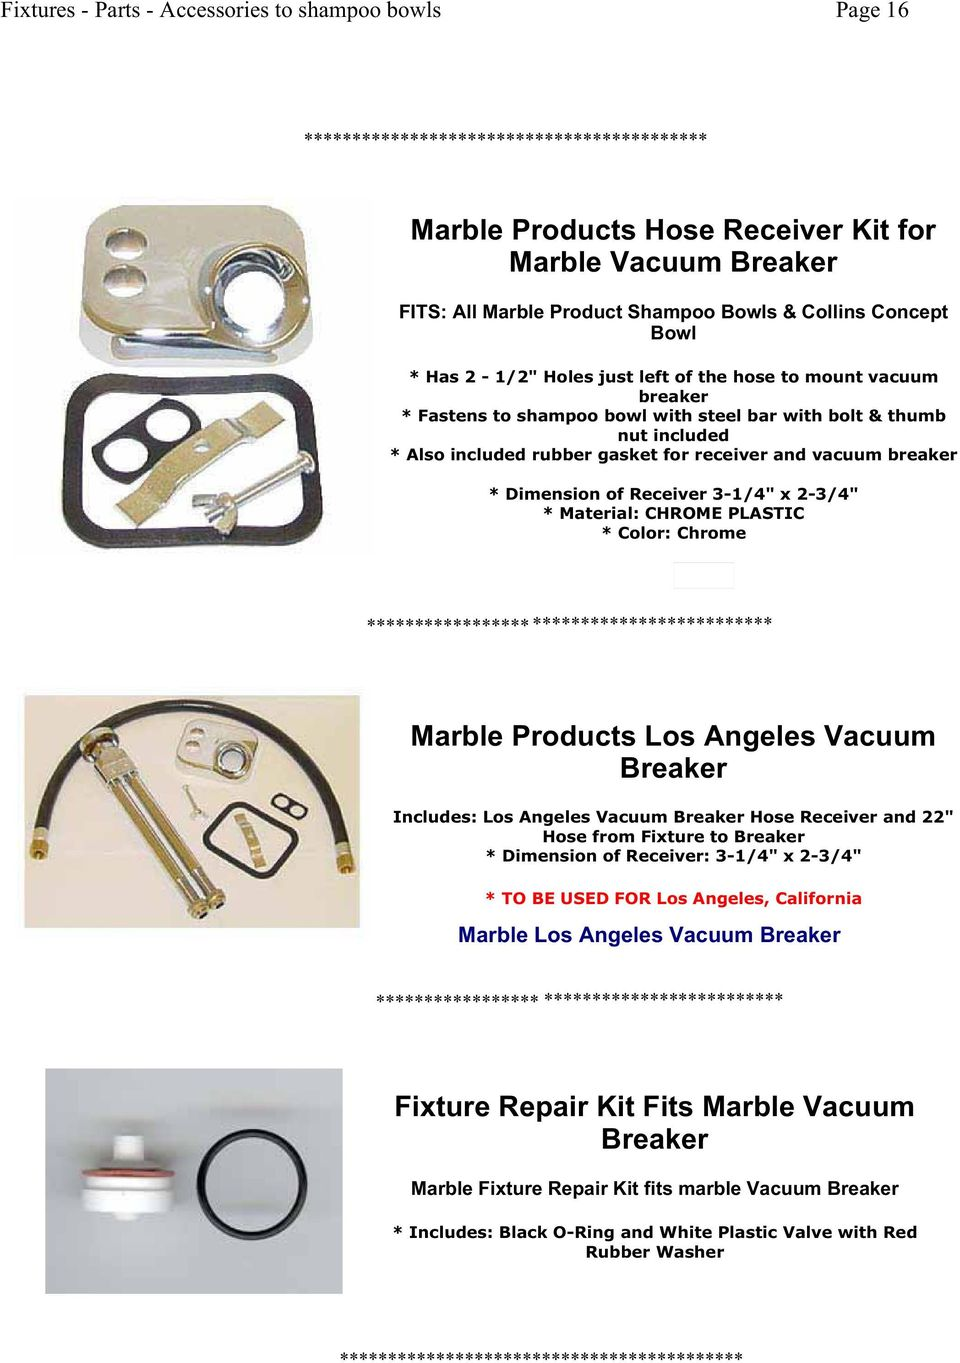 "* Color: Chrome ***************** ************************* Marble Products Los Angeles Vacuum Breaker Includes: Los Angeles Vacuum Breaker Hose Receiver and 22"" Hose from Fixture to Breaker *"